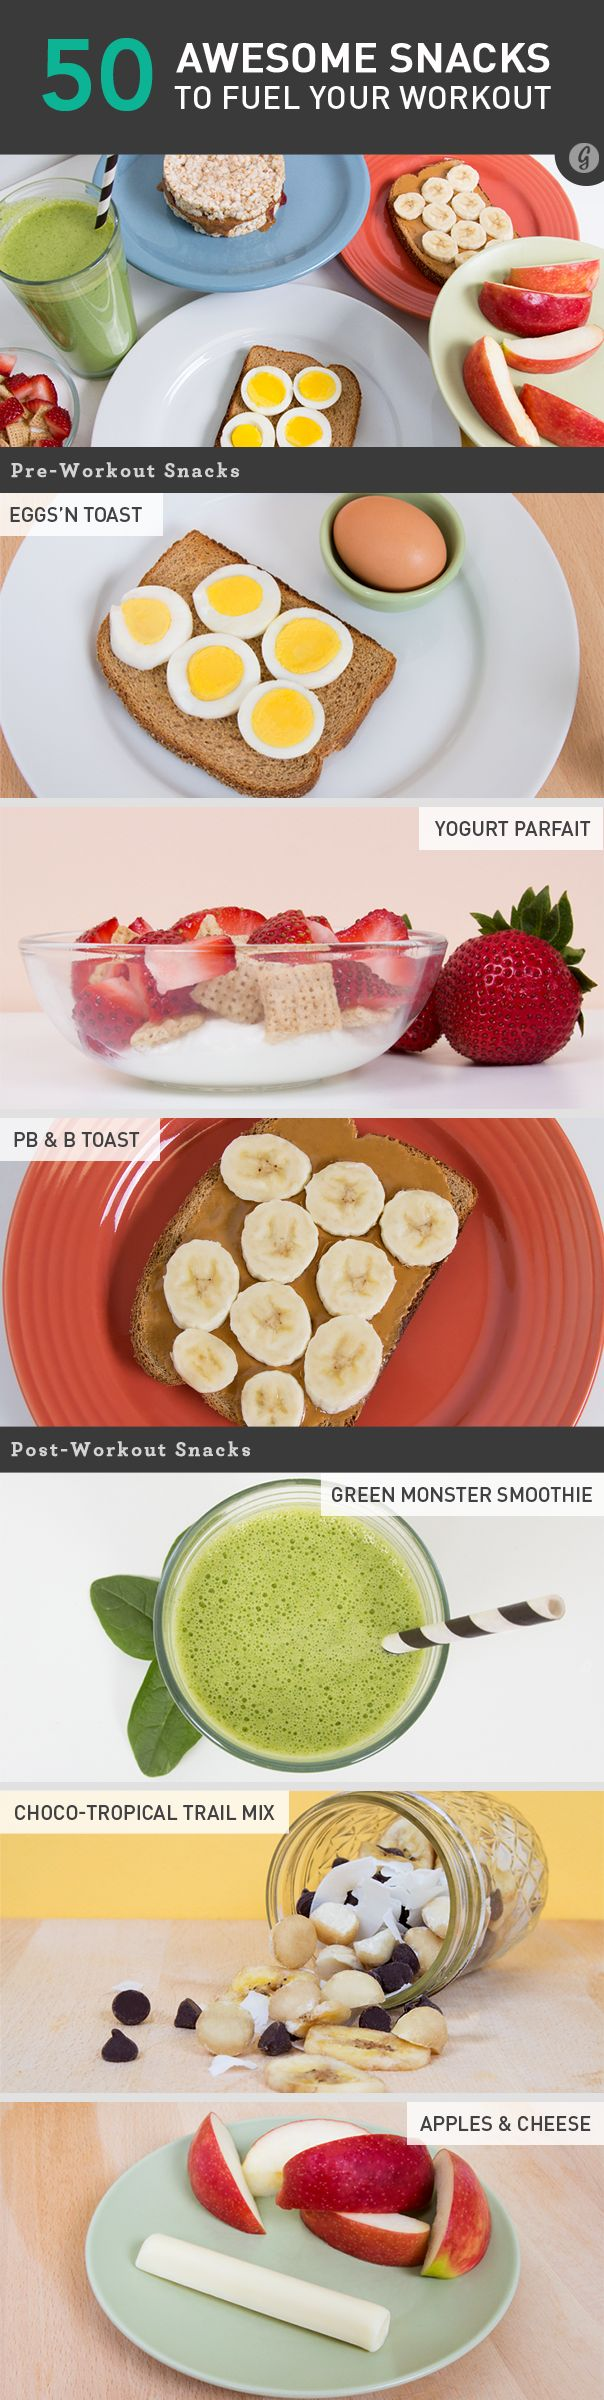 Low calorie breakfast smoothie recipes for weight loss picture 8